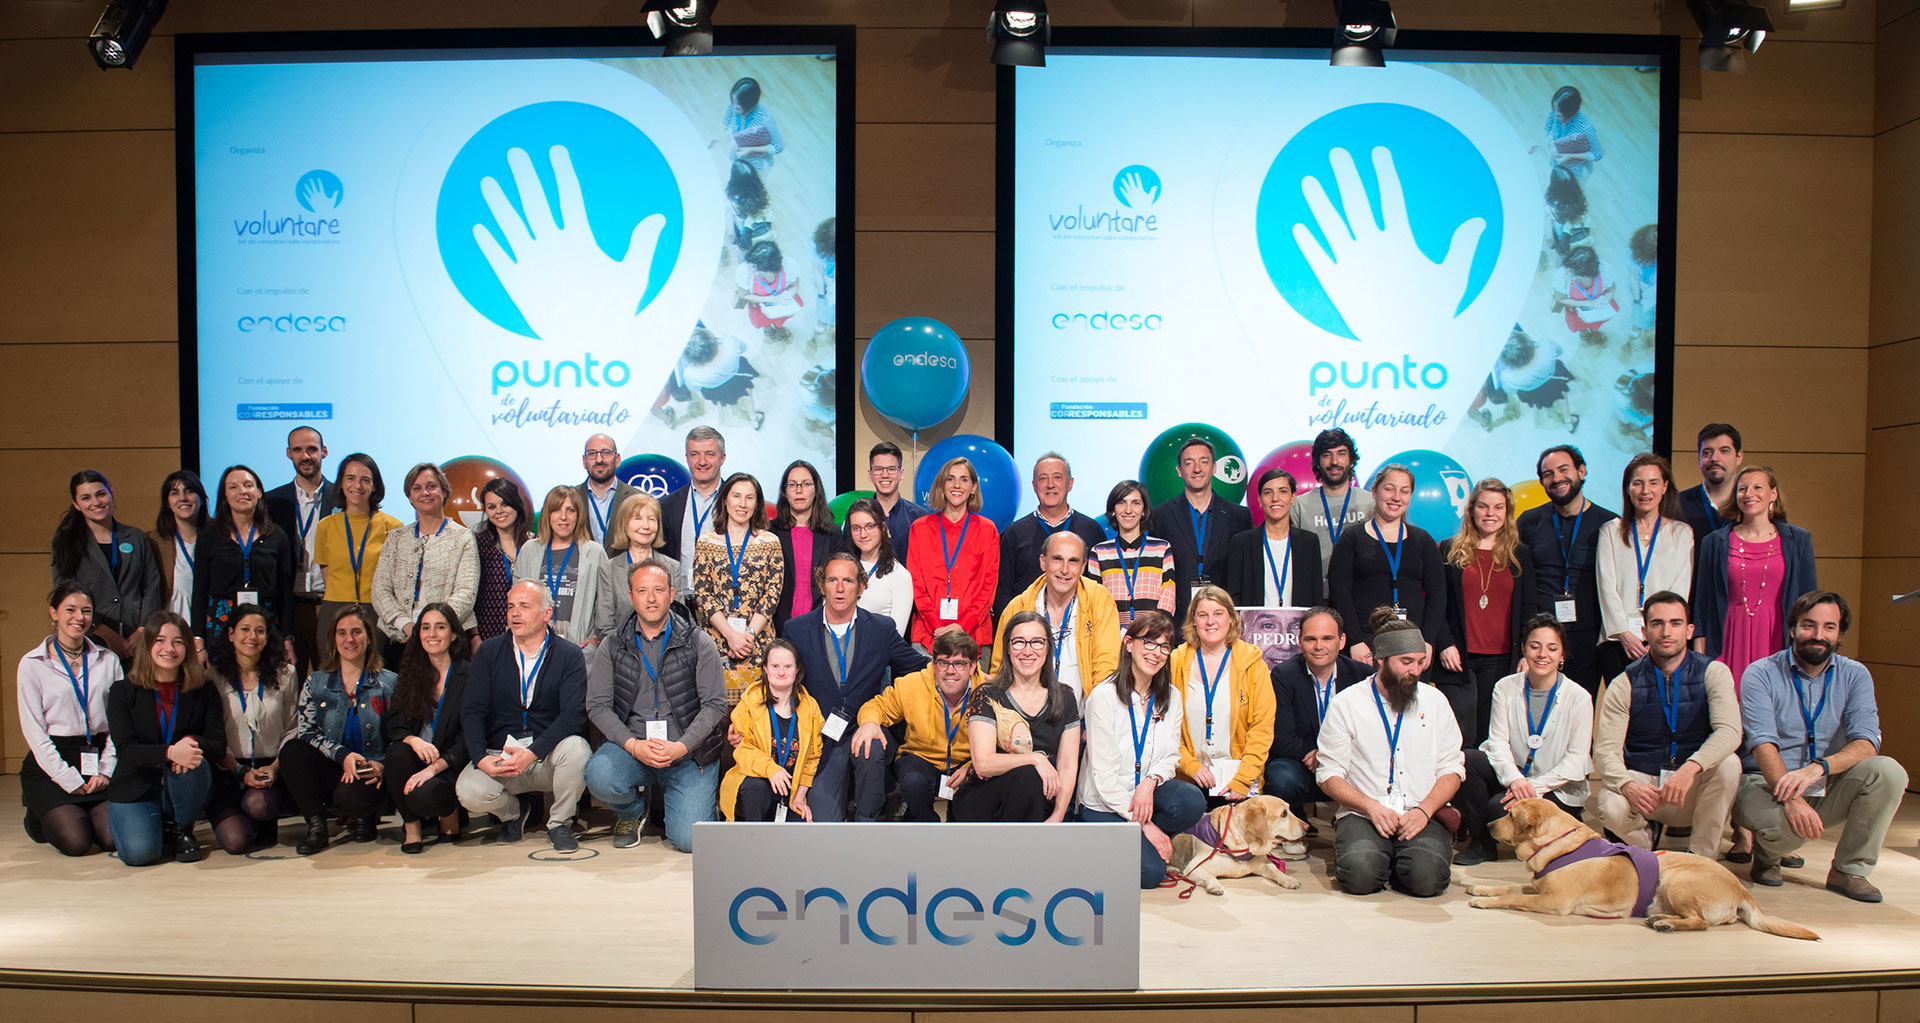 Punto_Voluntariado_Voluntare_Endesa_Corresponsables